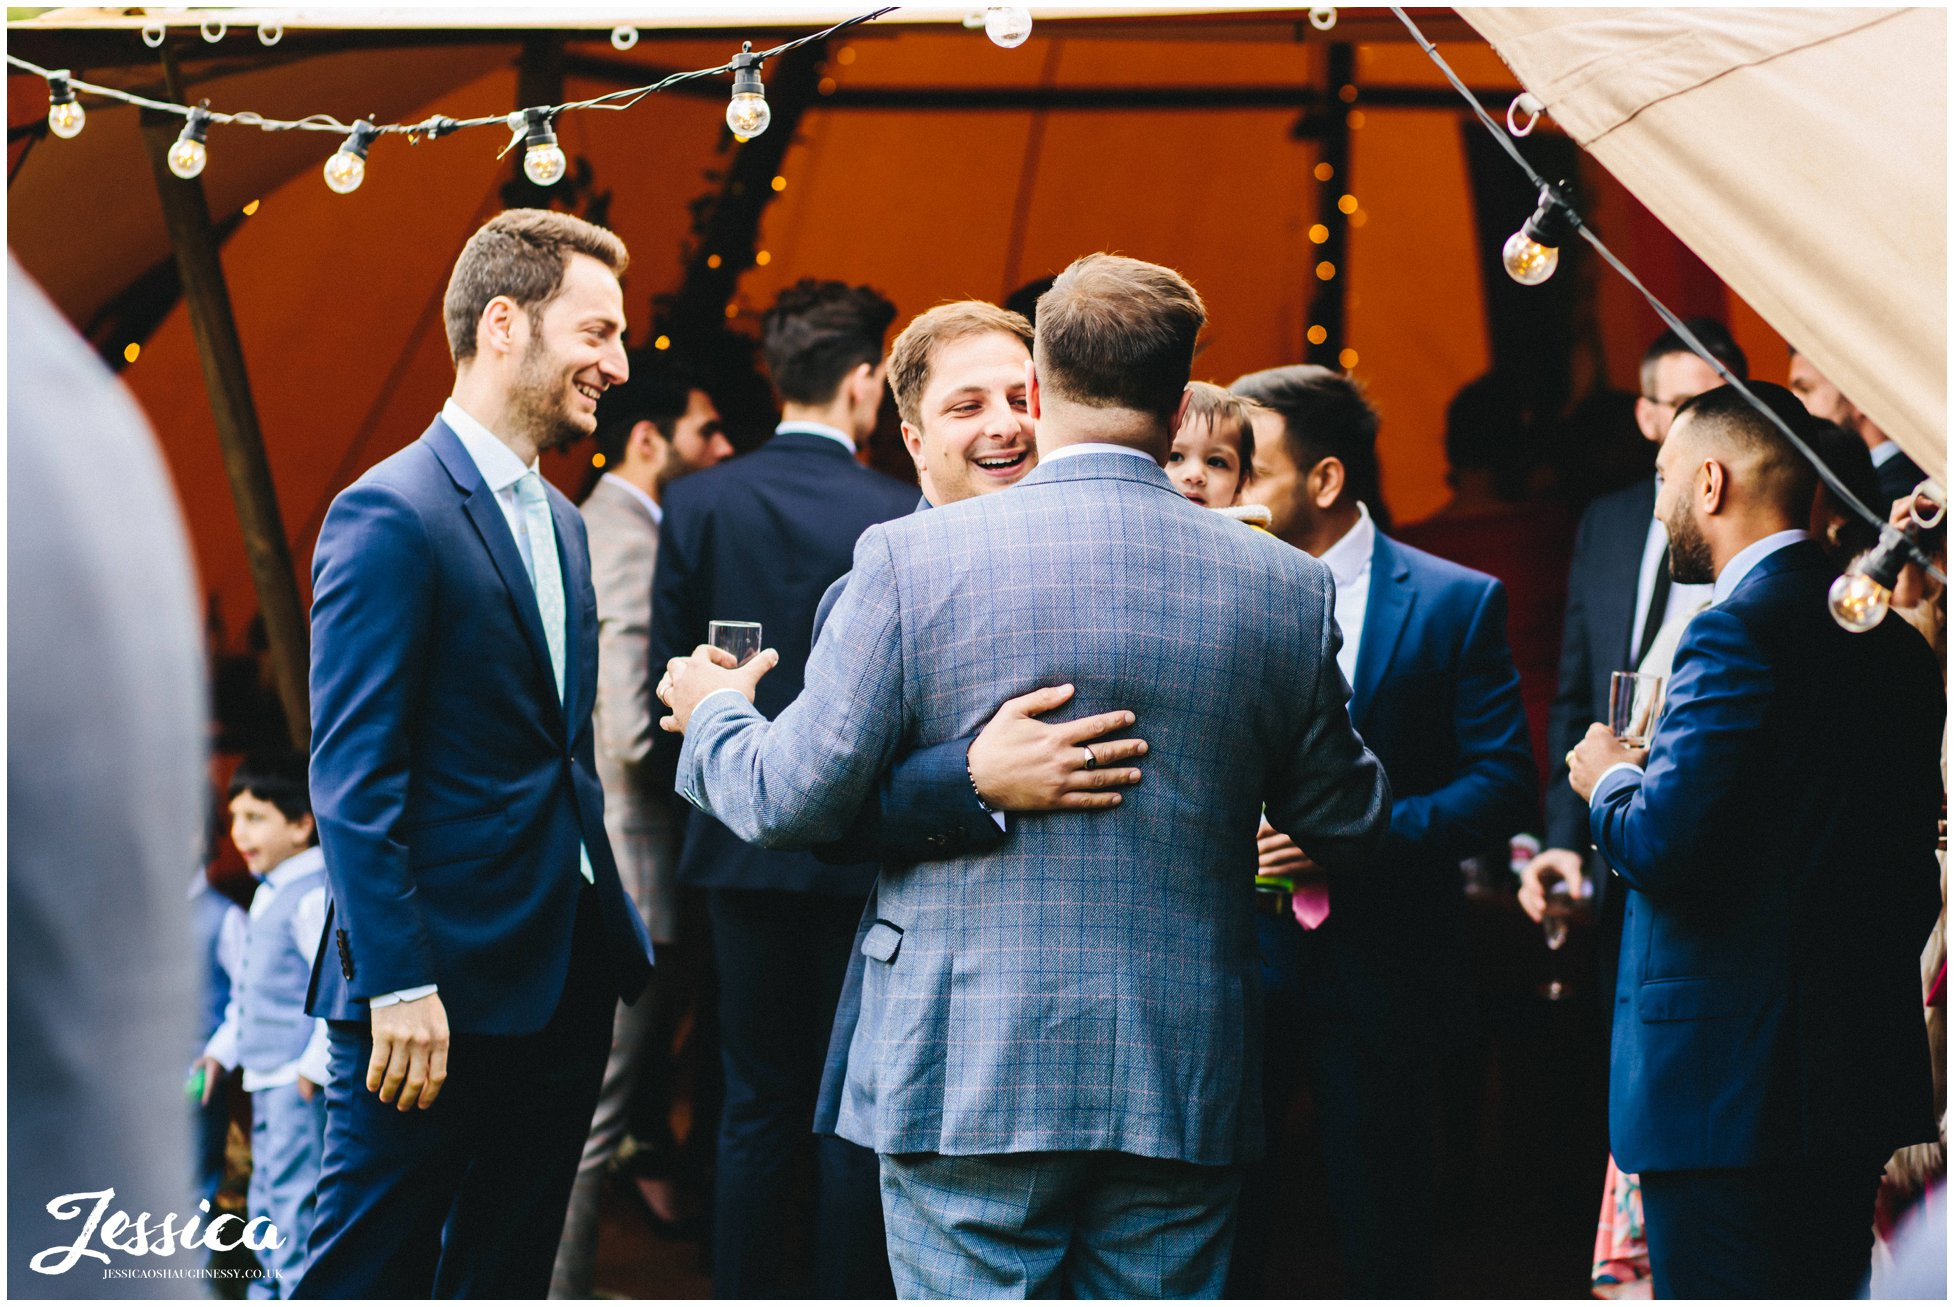 The grooms family greet him before the ceremony starts